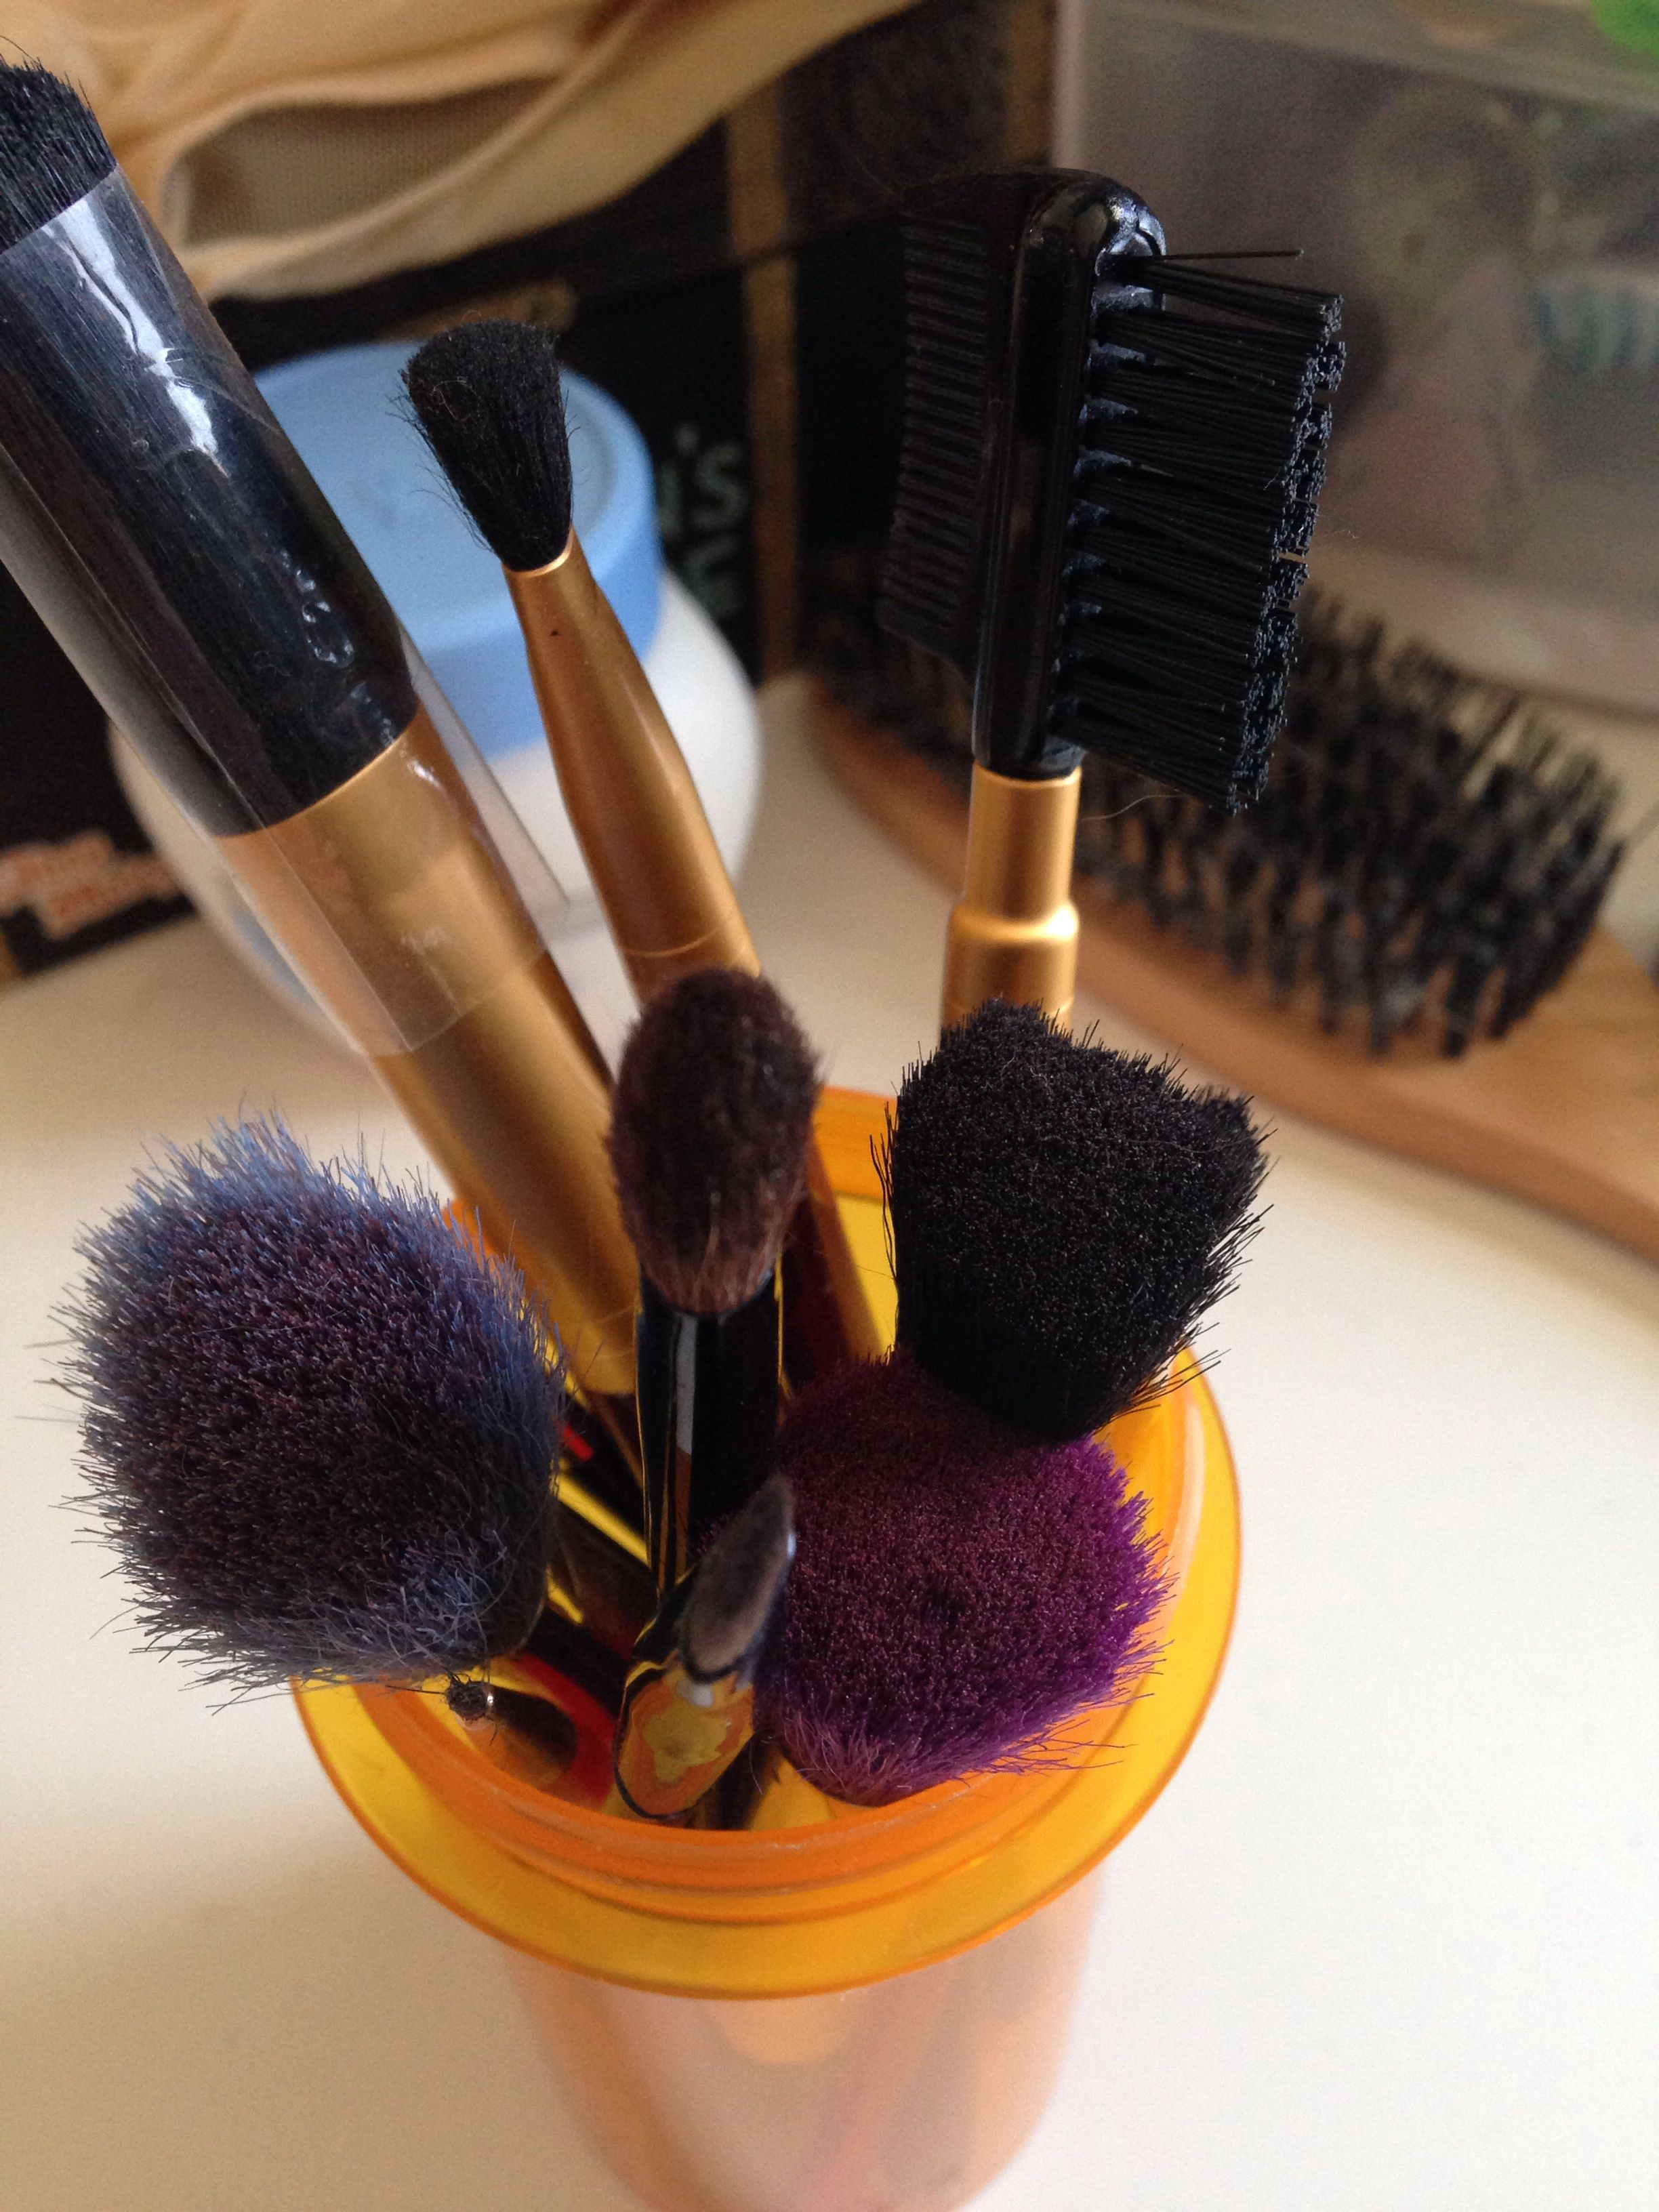 Use empty pill bottles to keep all your makeup brushes in